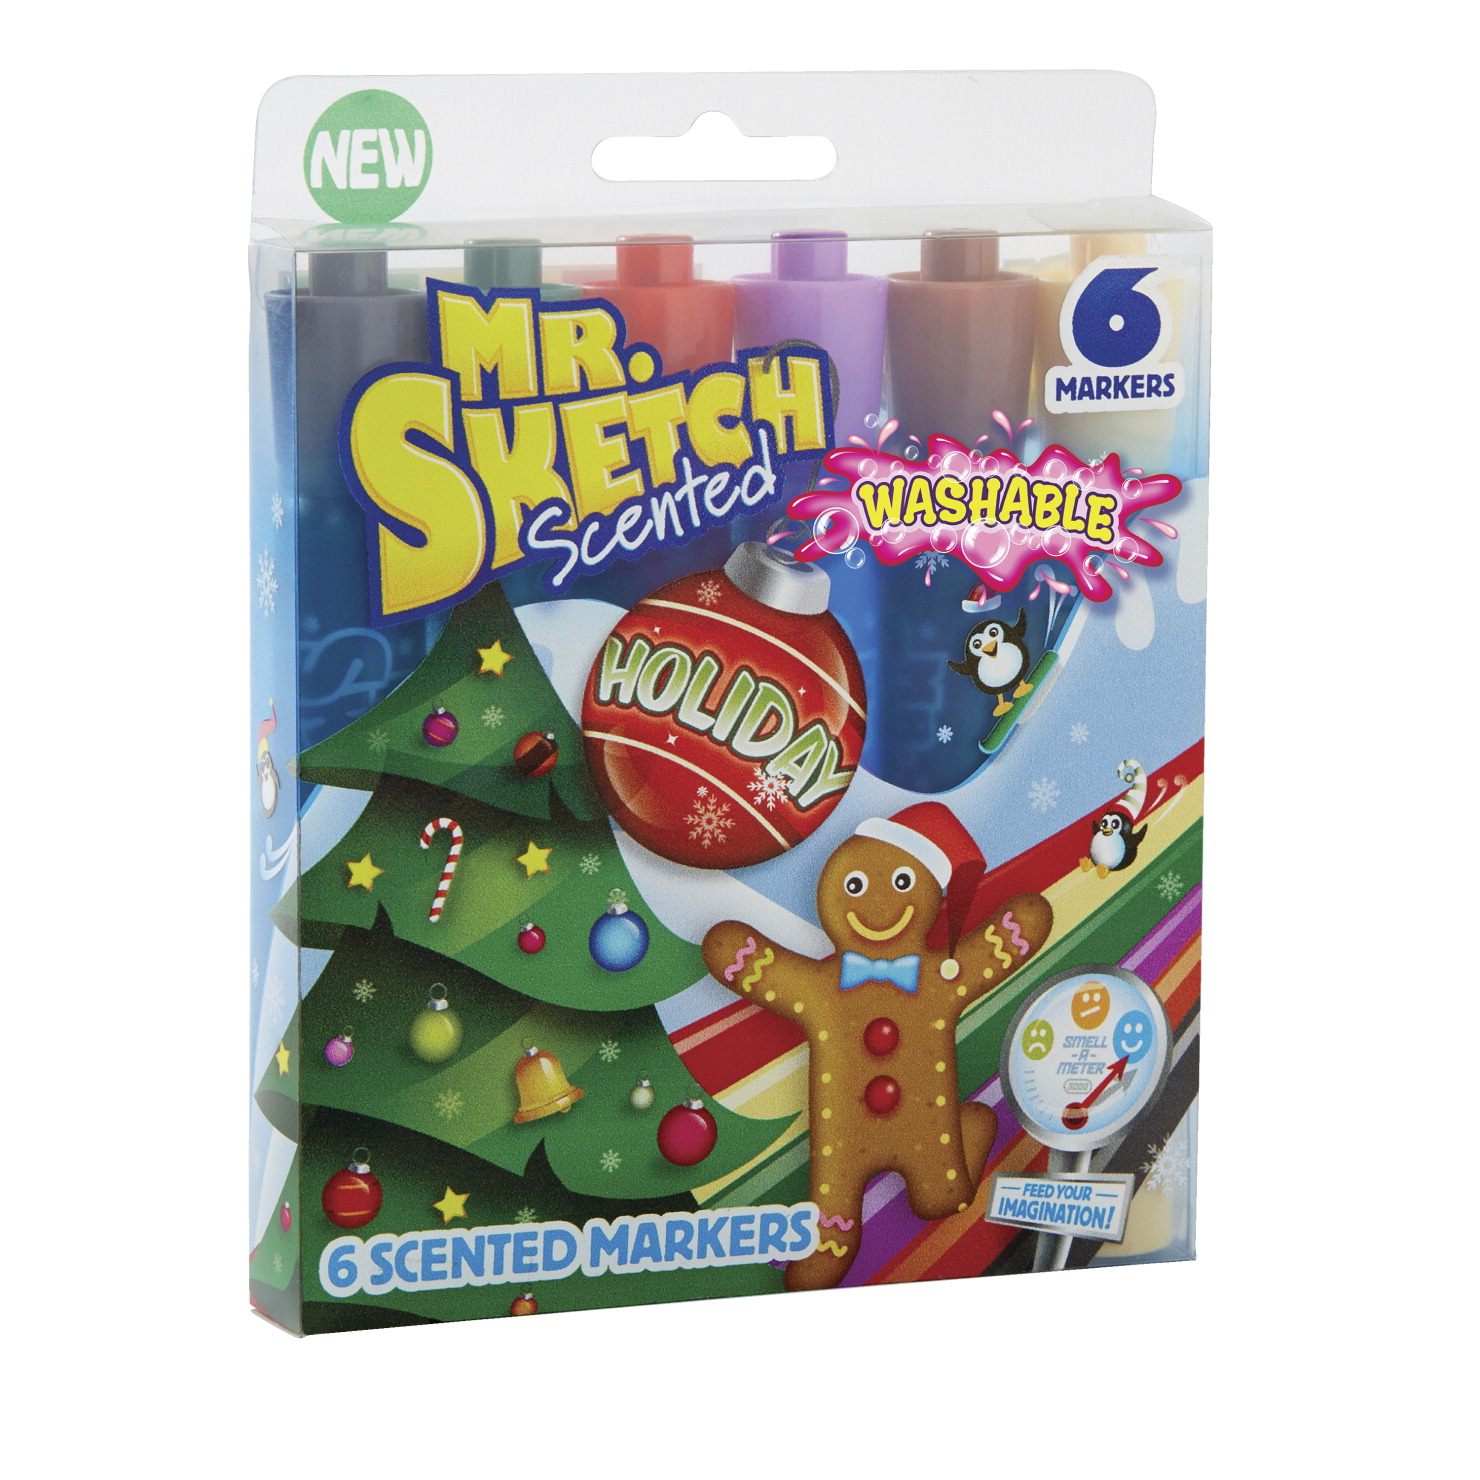 Mr. Sketch Scented Washable Markers, Holiday Scents and Colors, Chisel Tip, Set of 6